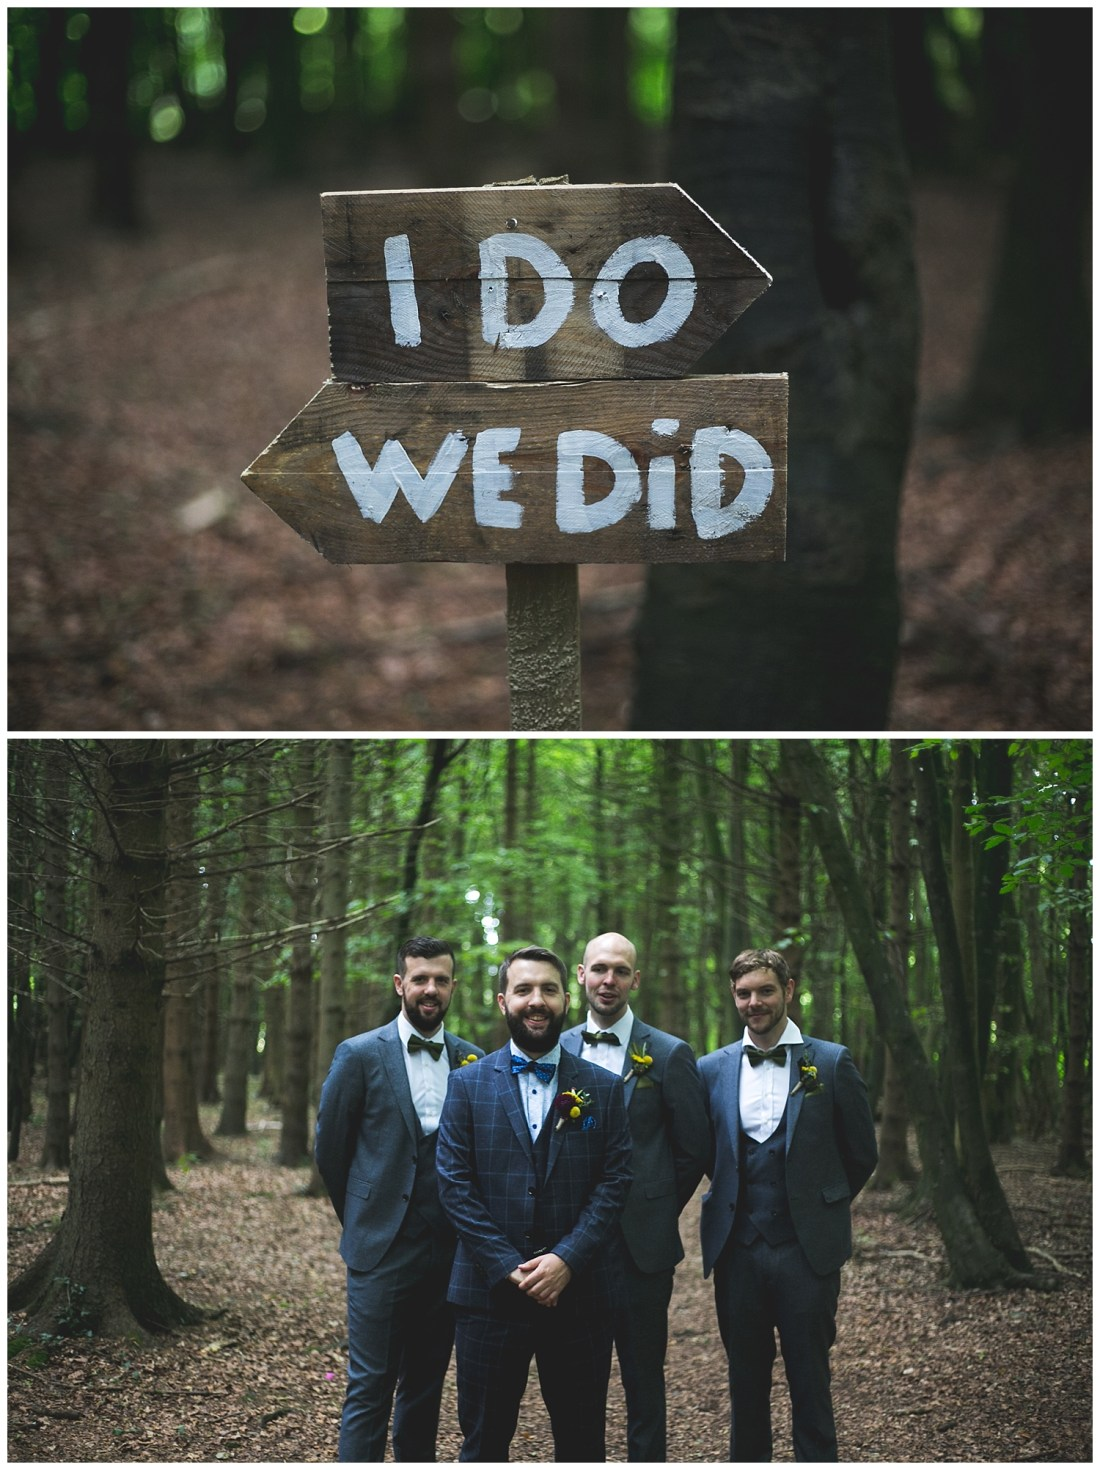 I DO WE DID wedding sign idea